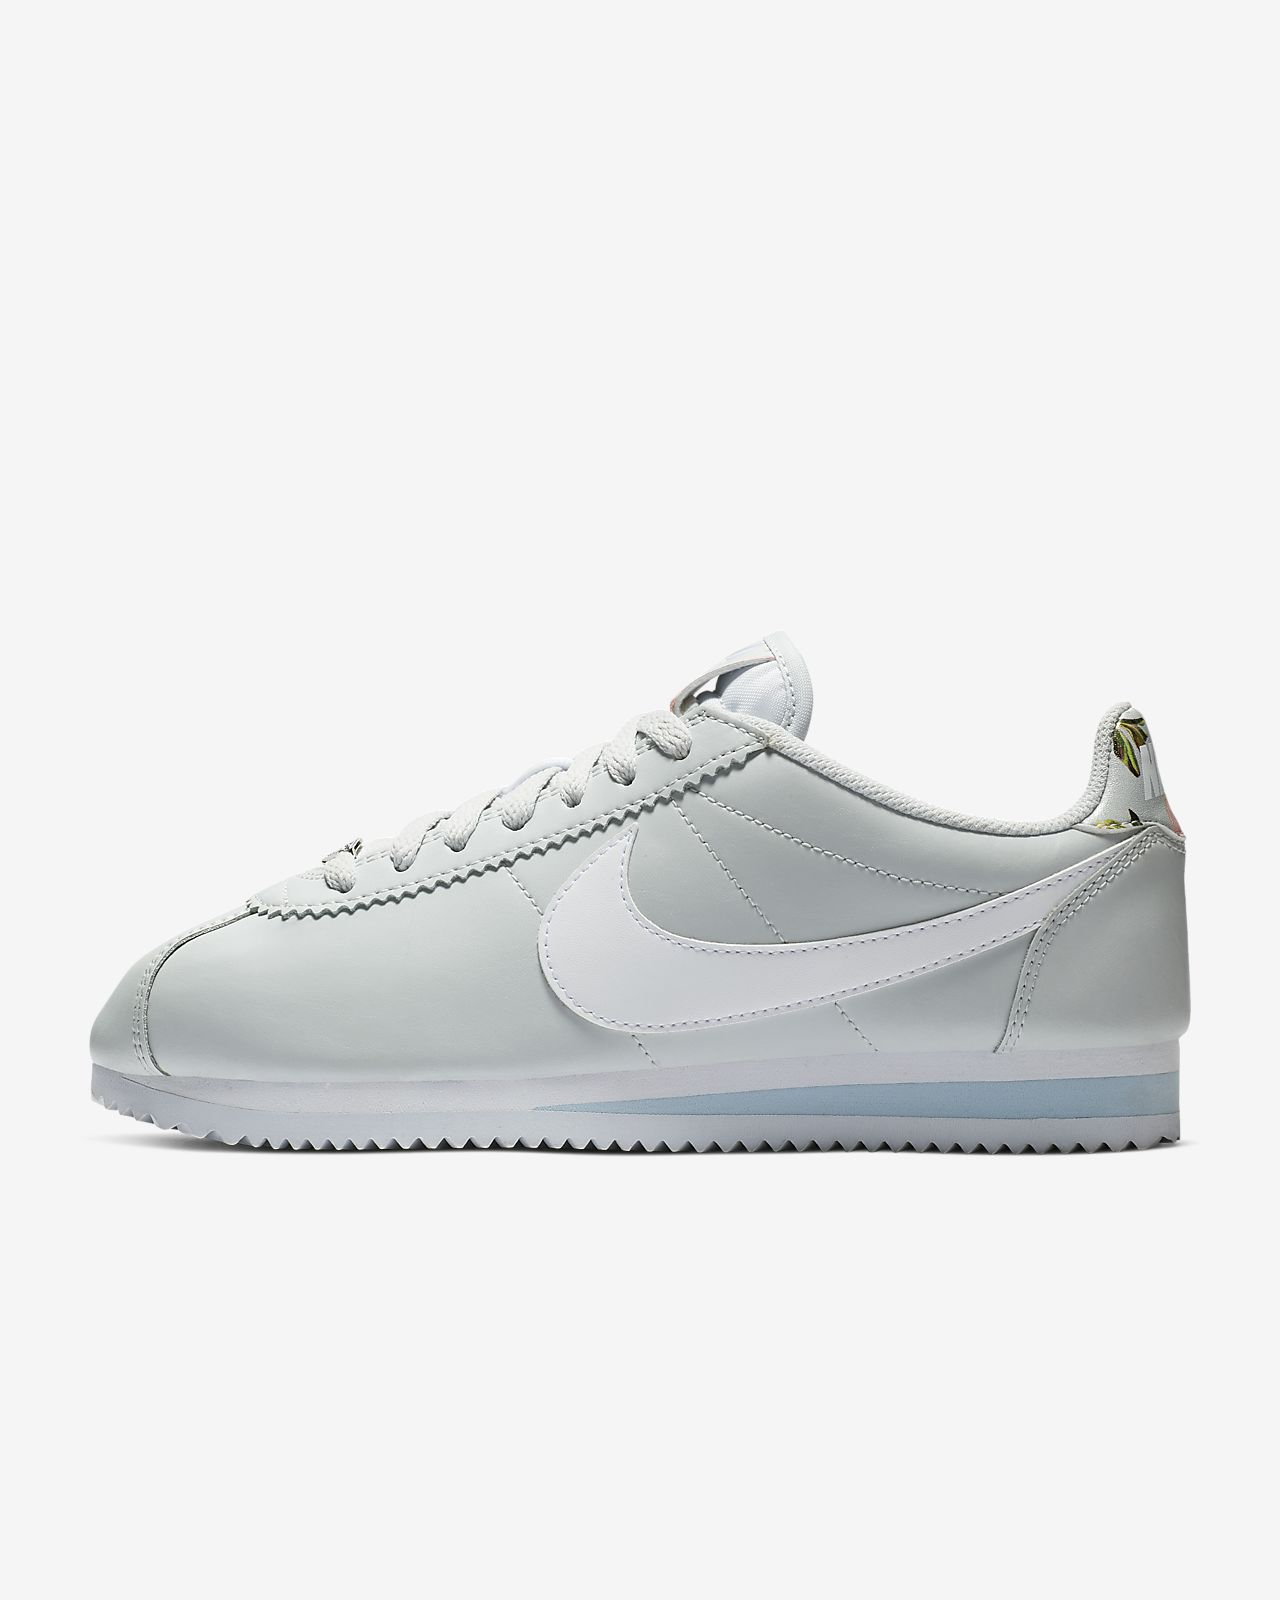 check out cf093 ca8a1 ... Nike Classic Cortez Floral Womens Shoe